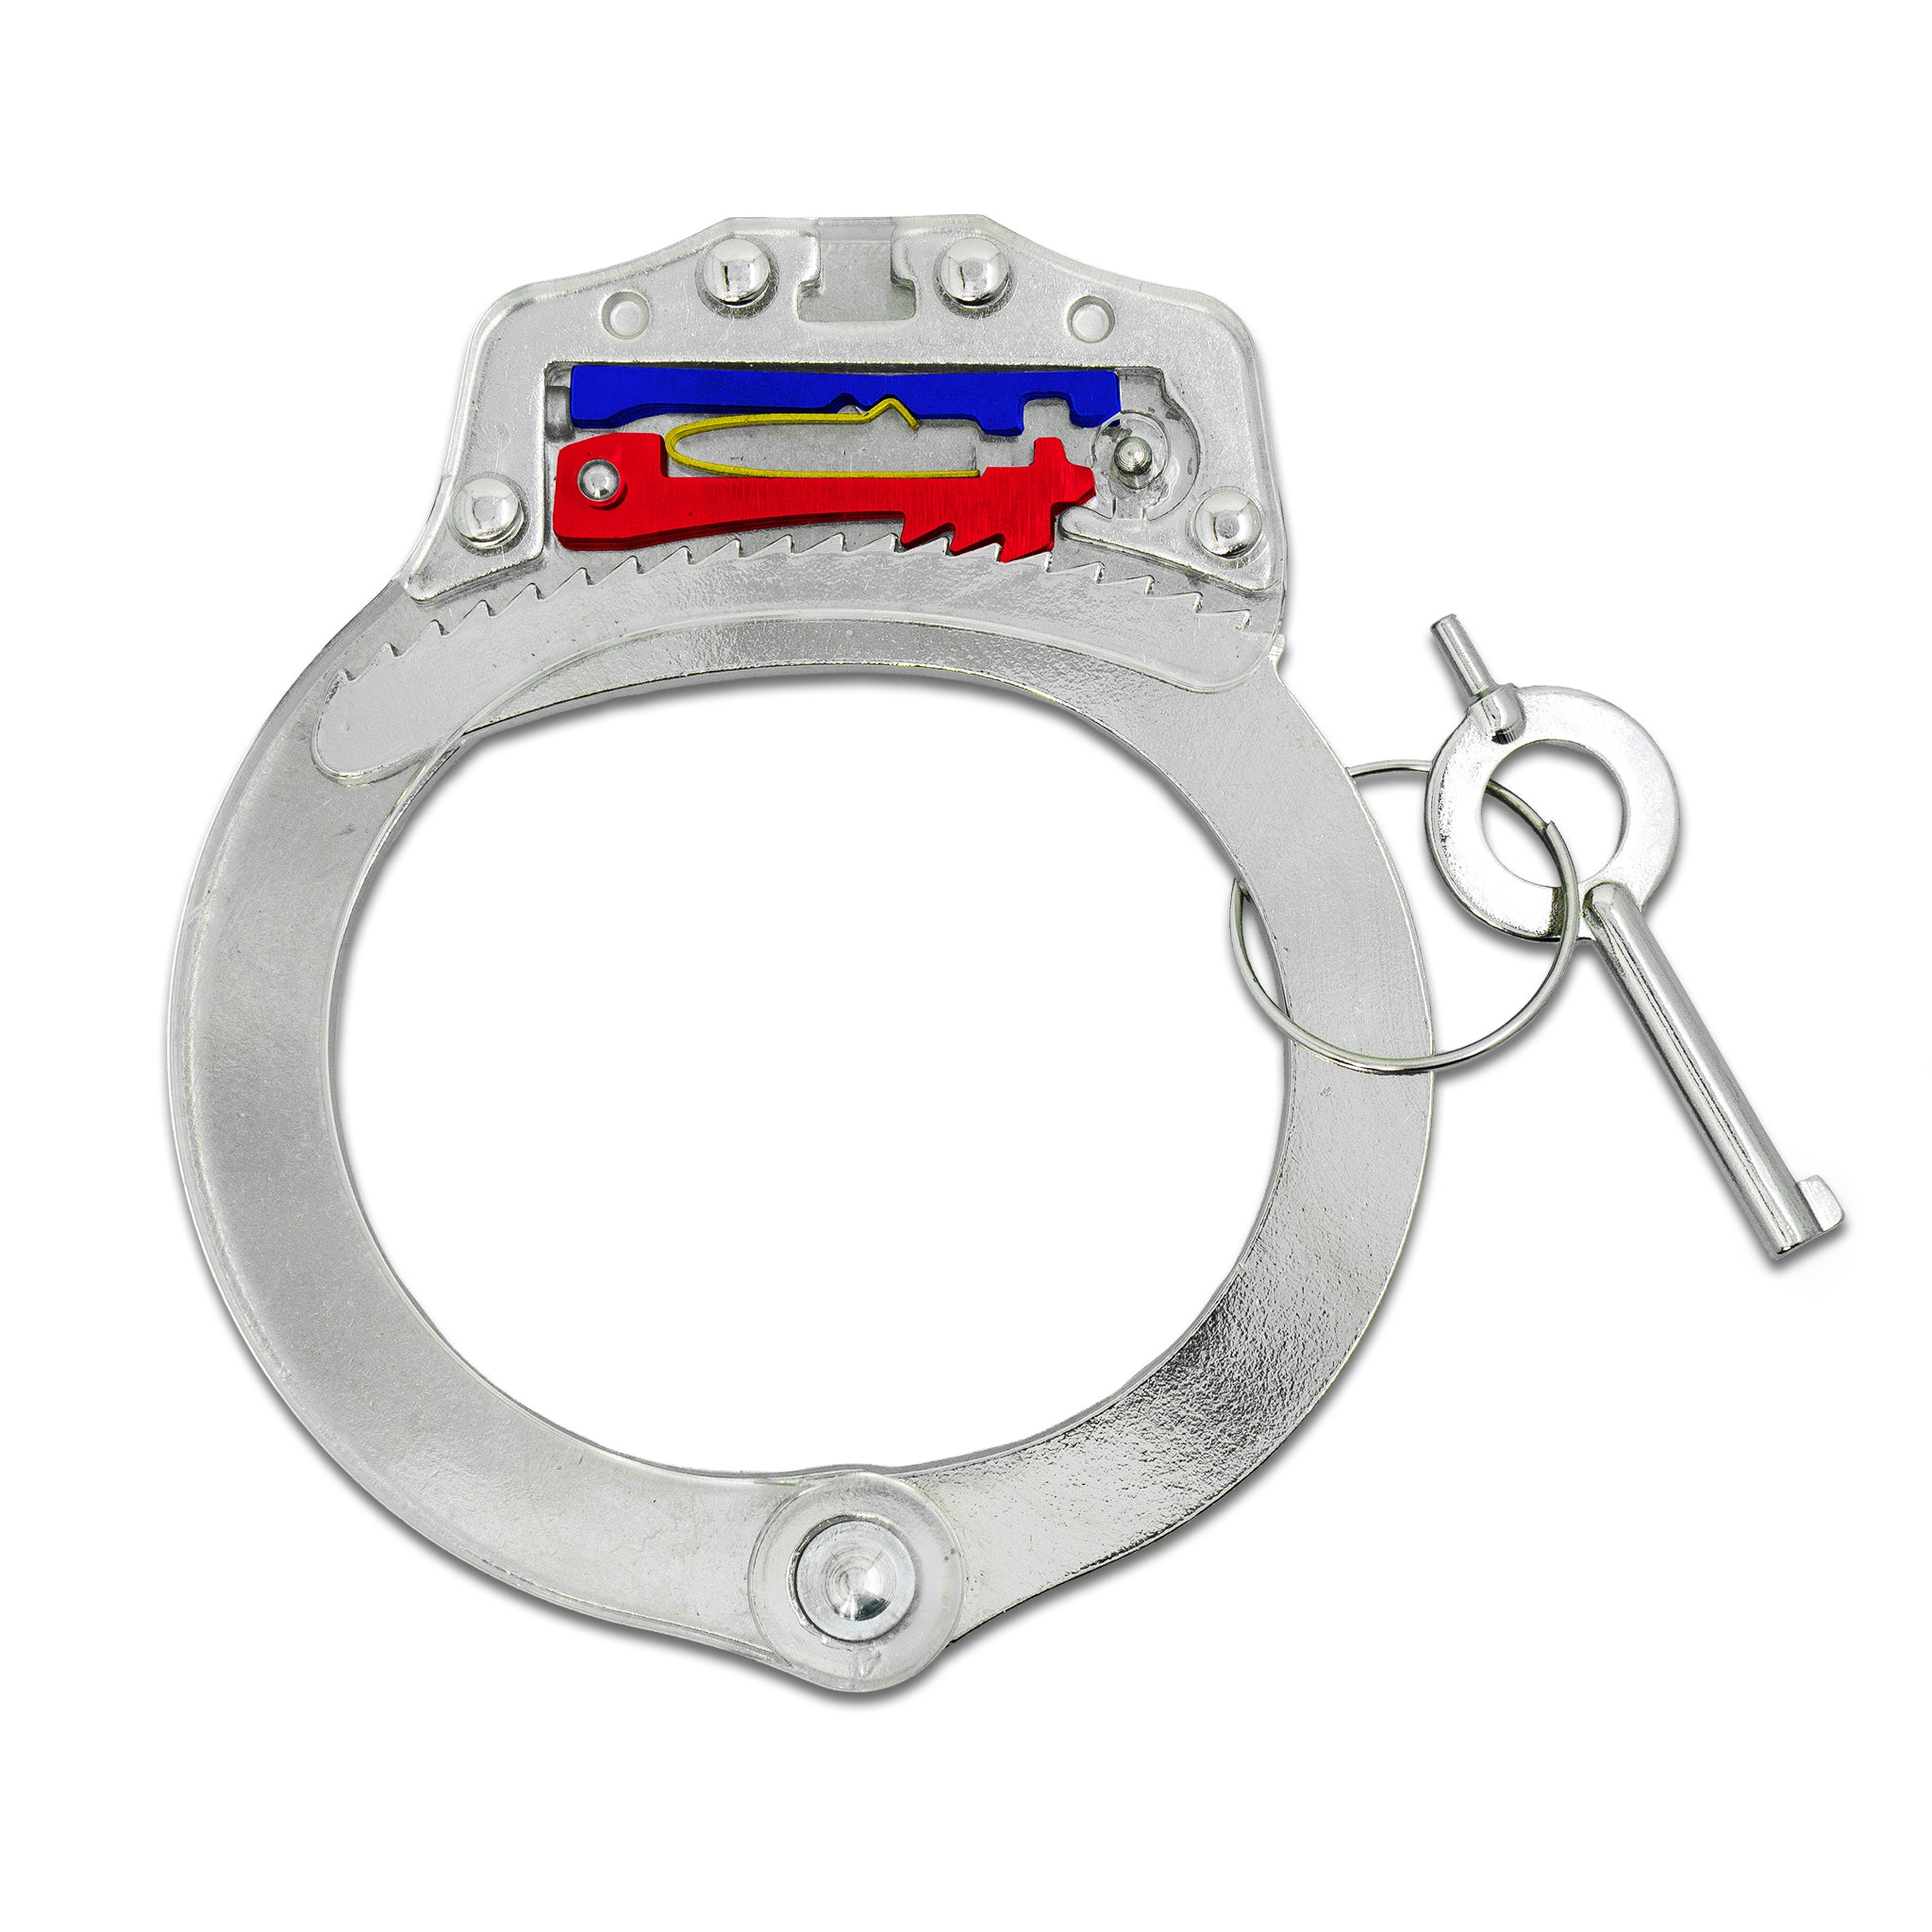 Acrylic Training Handcuffs + 2 Hostage Escape Cards